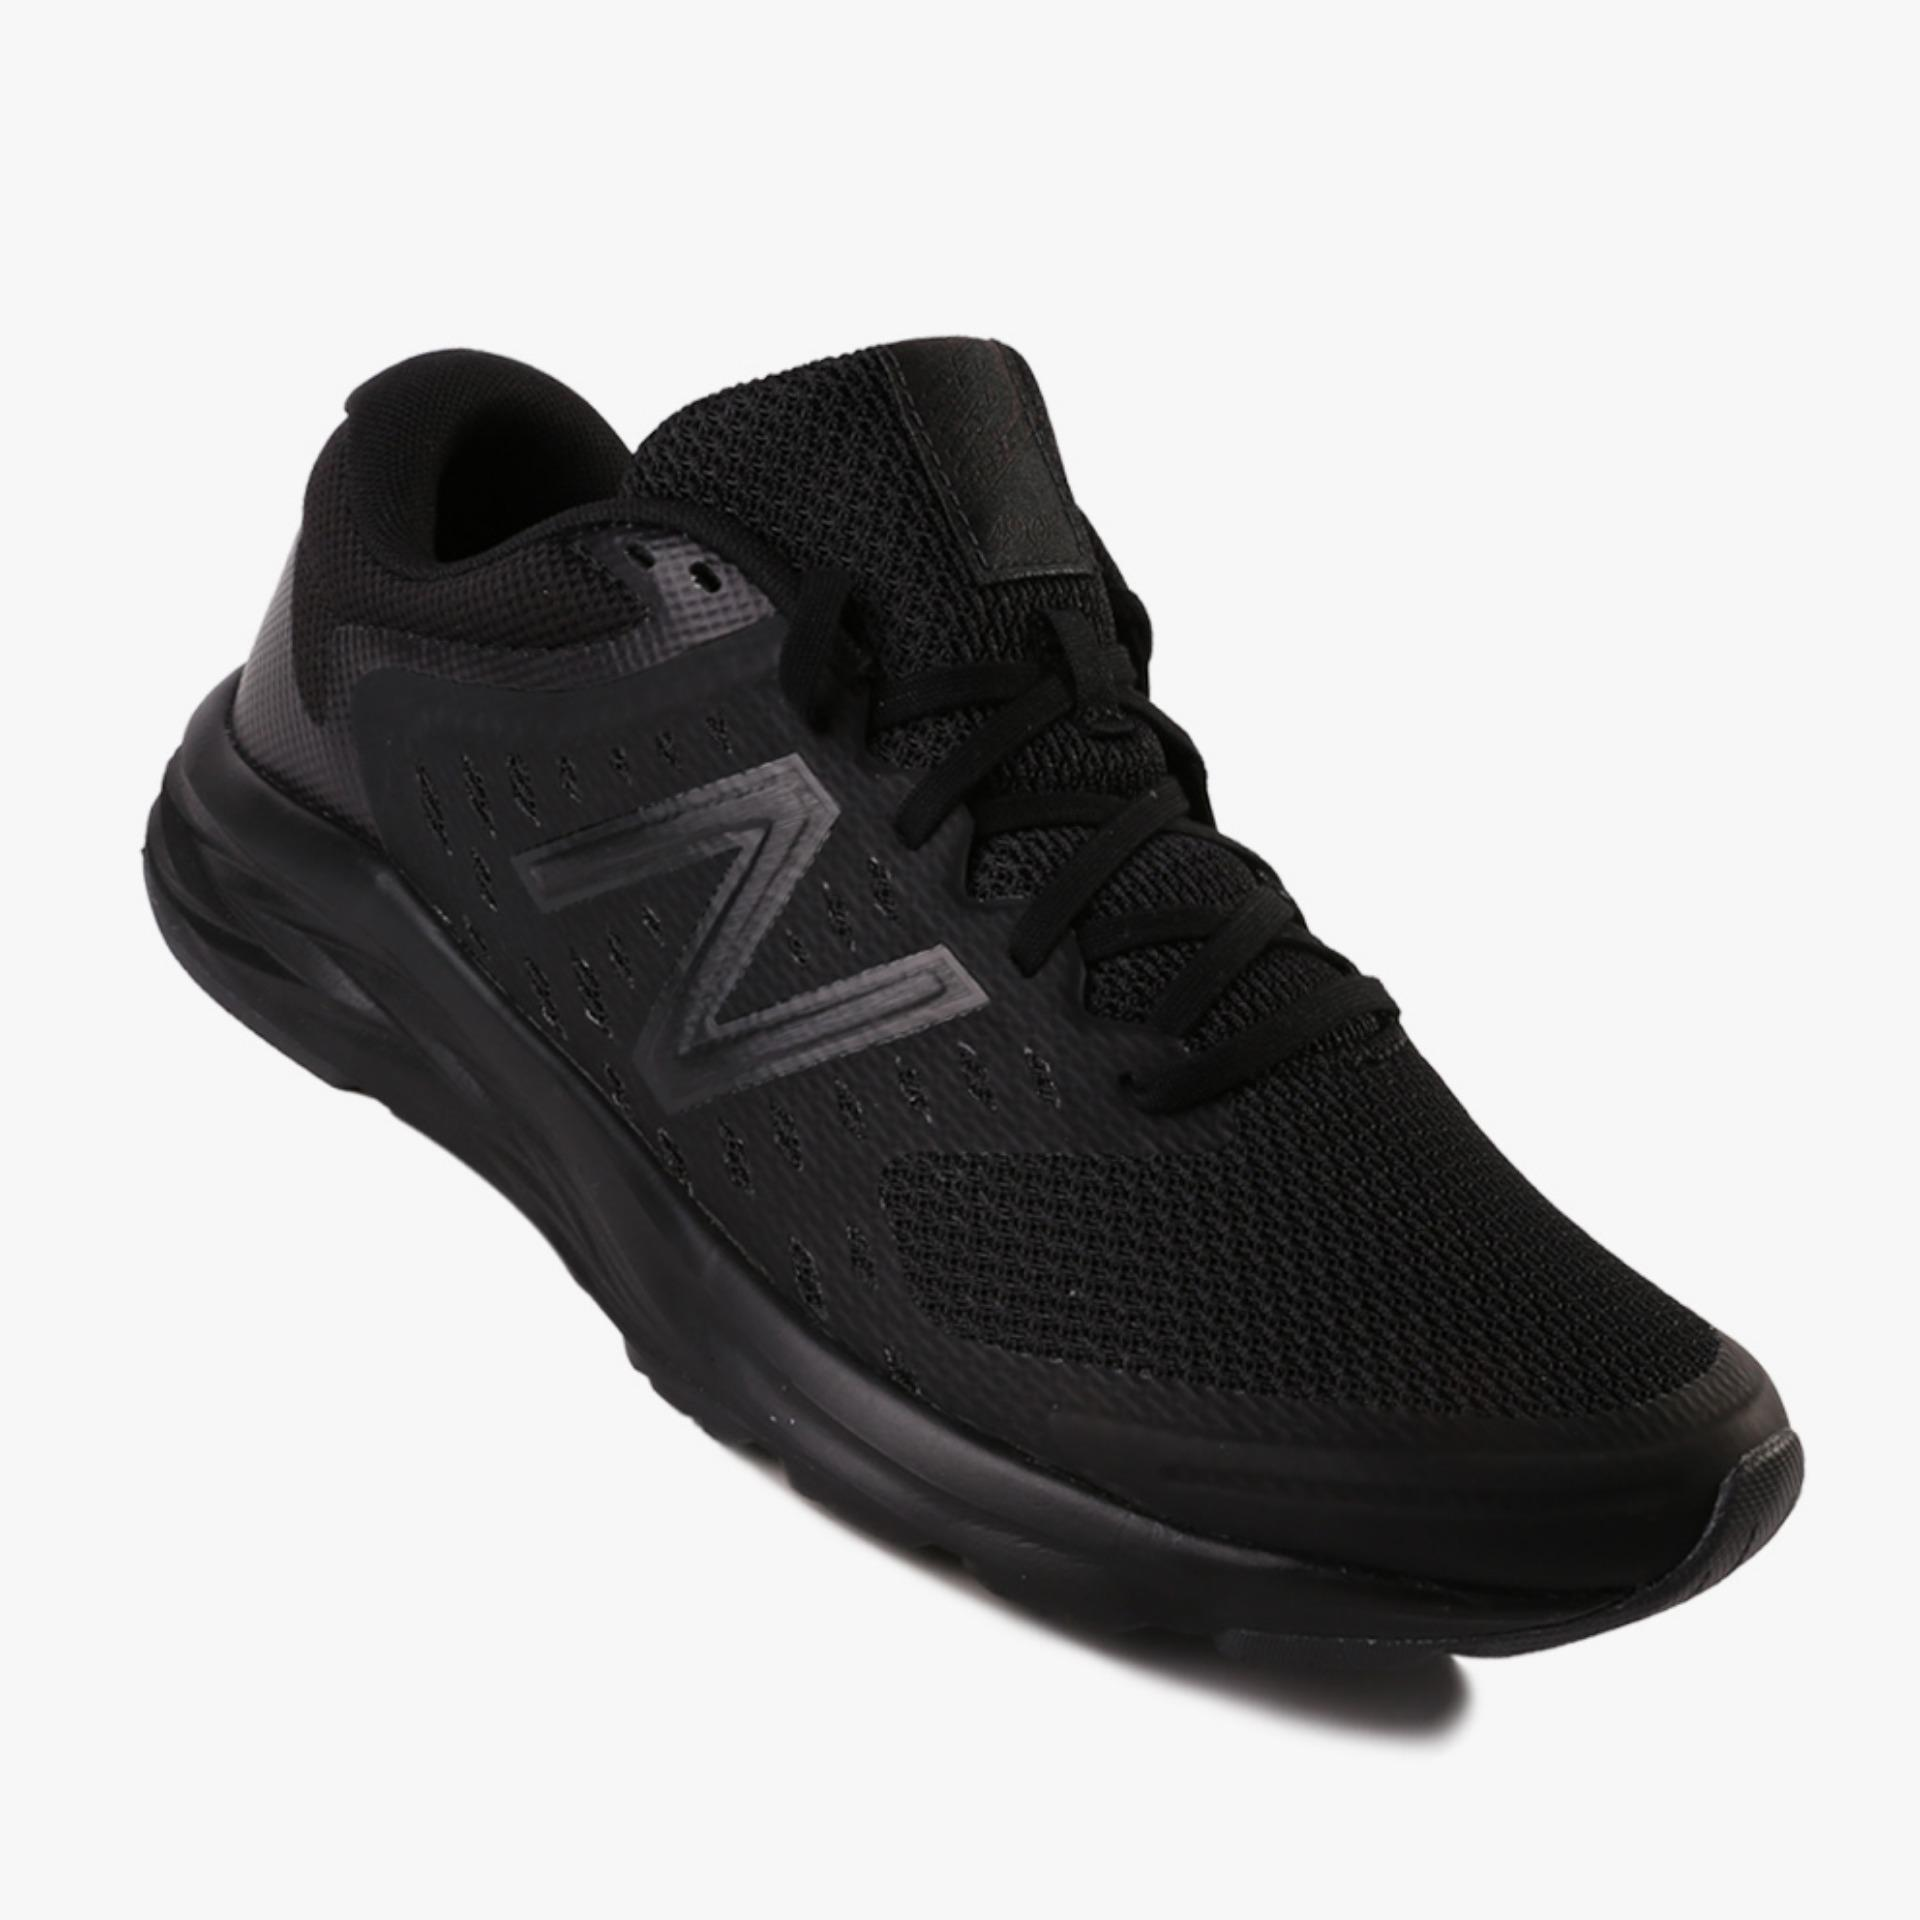 Harga New Balance Speed Ride 490 V5 Men S Running Shoes Hitam New